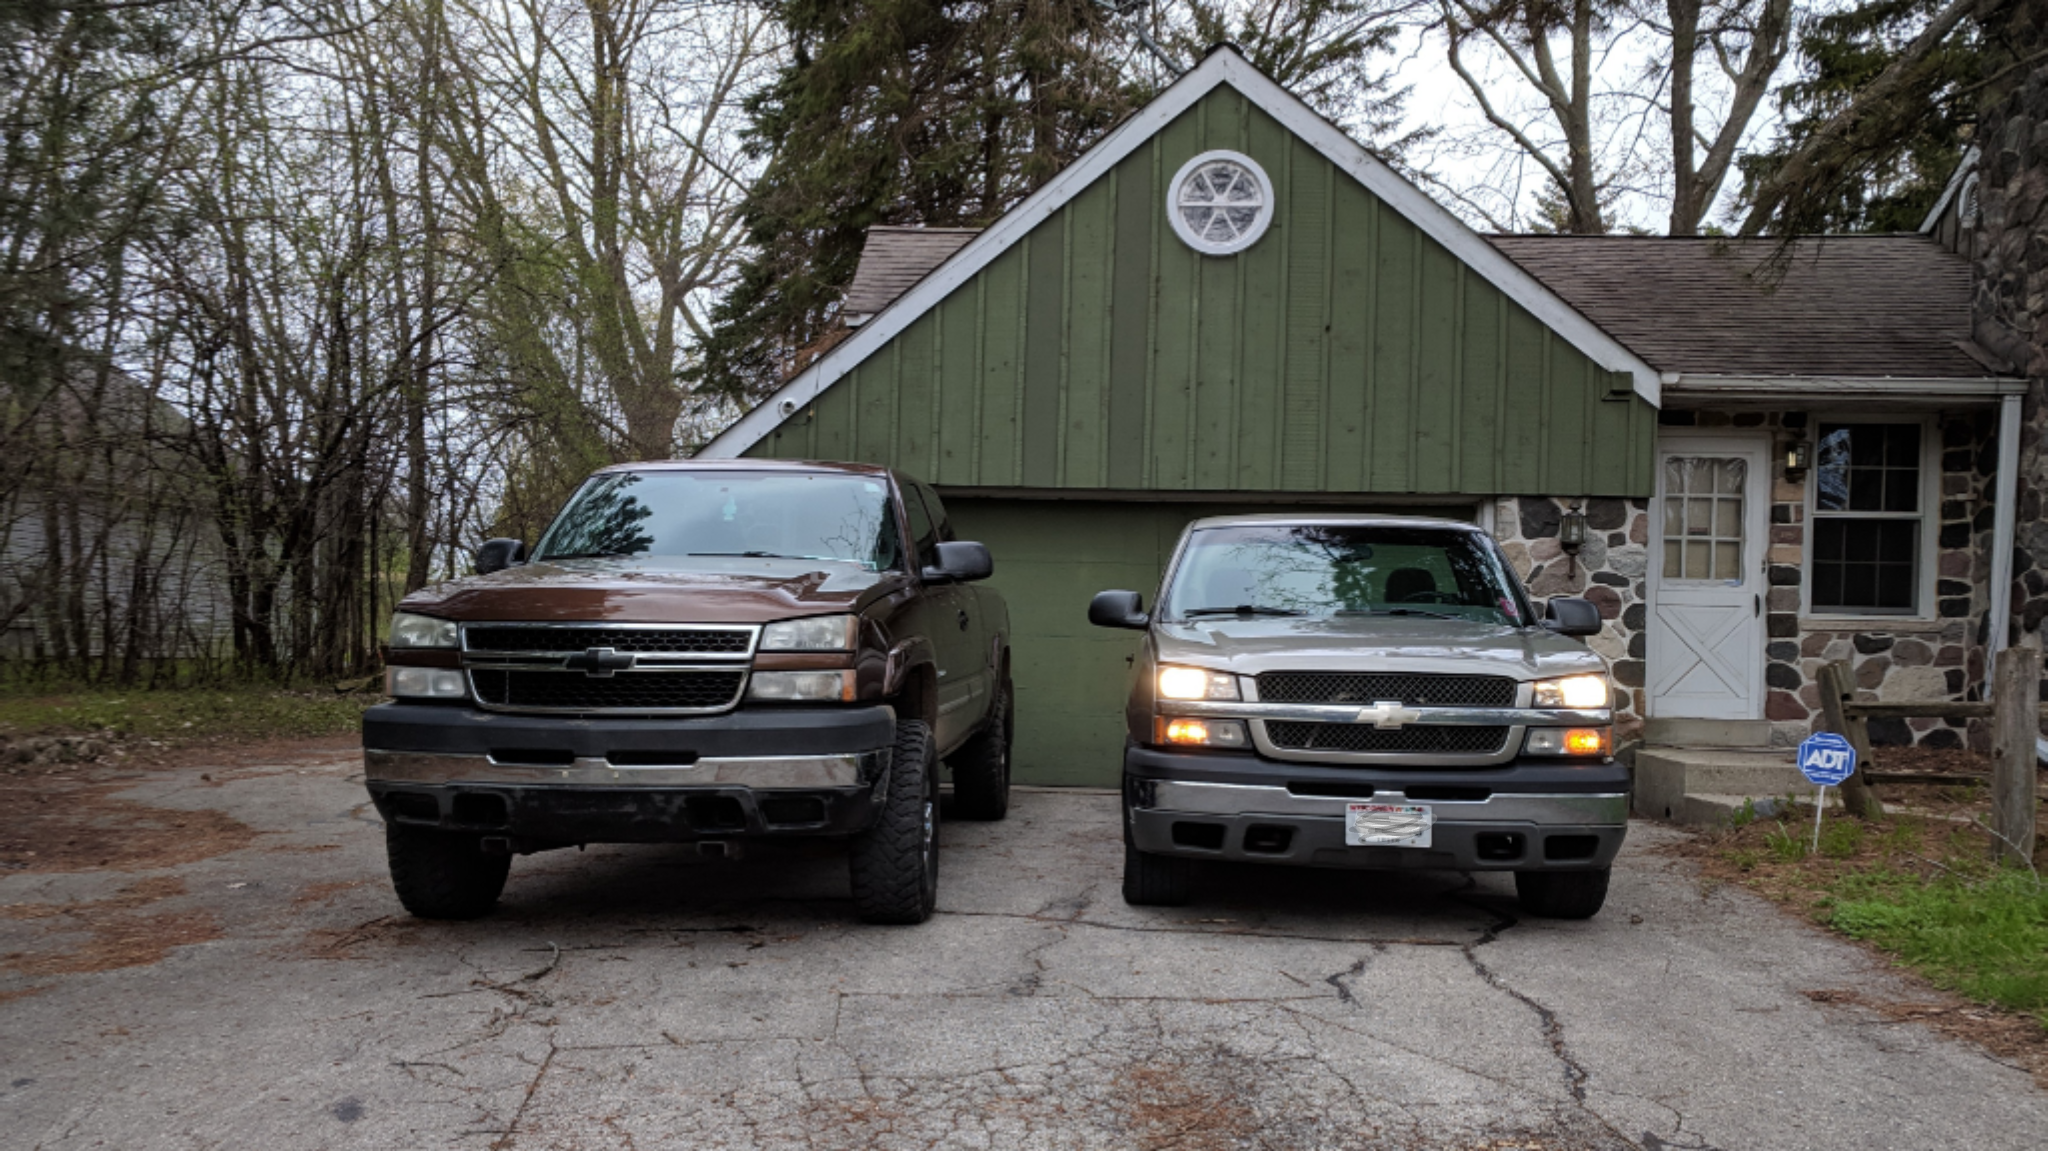 Click image for larger version  Name:trucks.png Views:14 Size:3.59 MB ID:104958